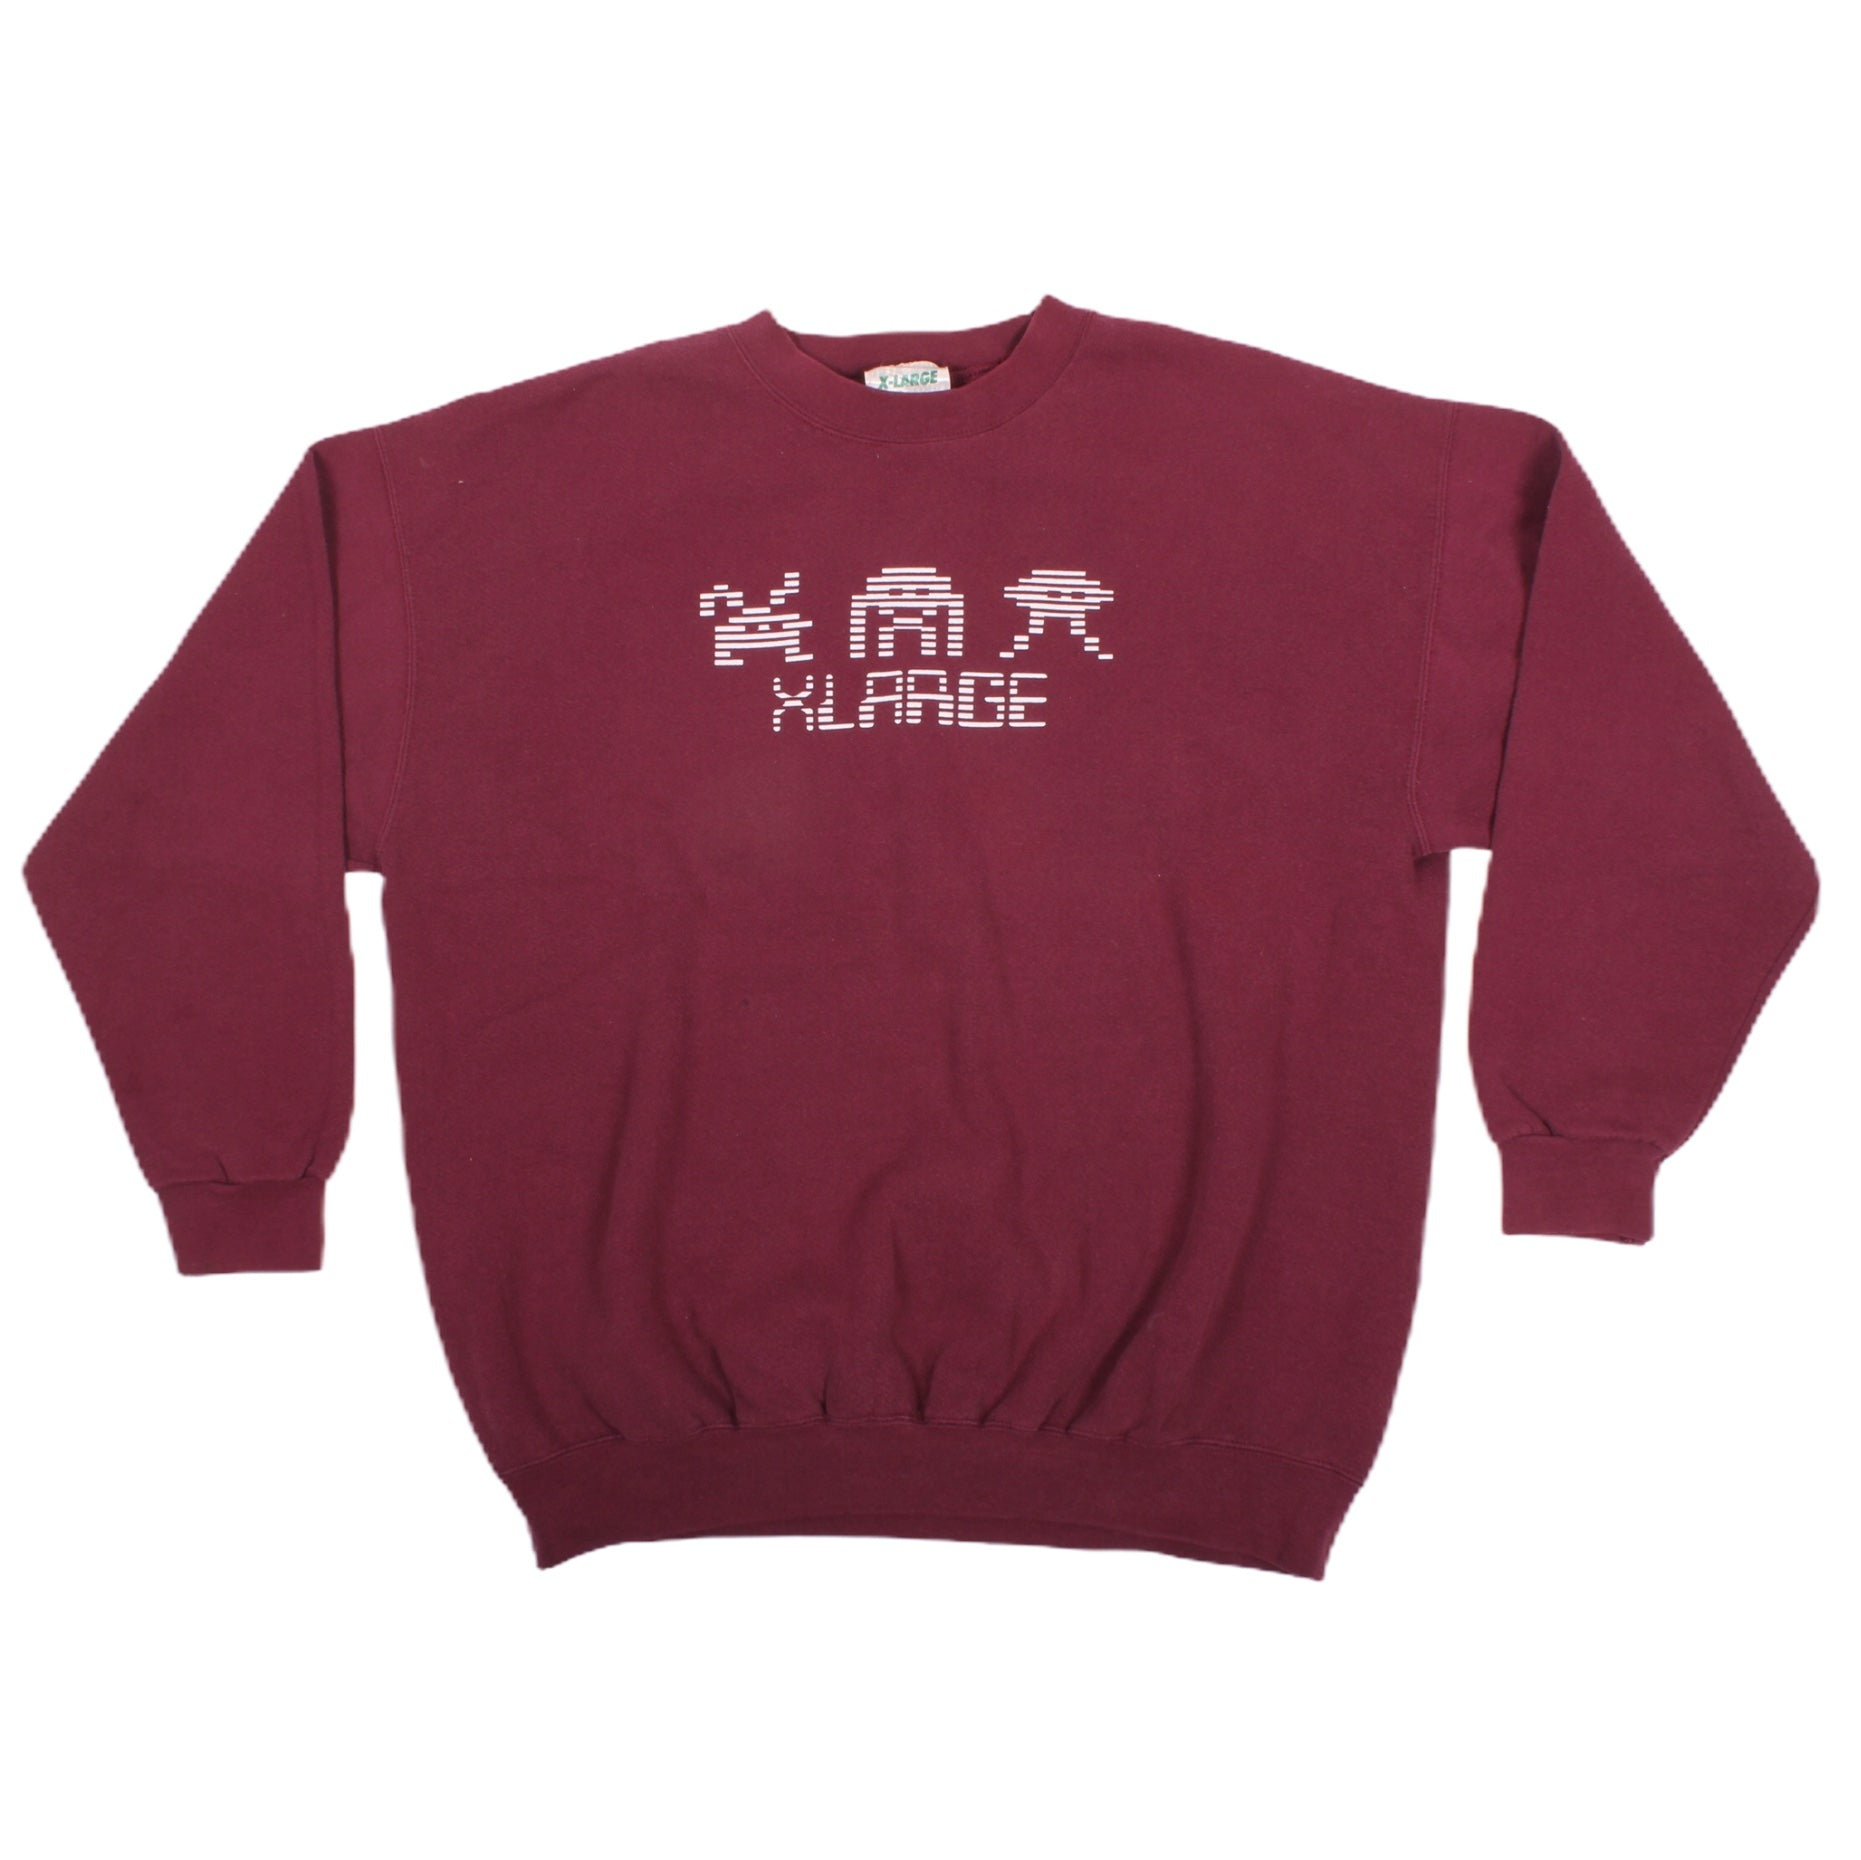 Overripe X-Large Crewneck Sweatshirt Invaders Burgundy XL (1991)